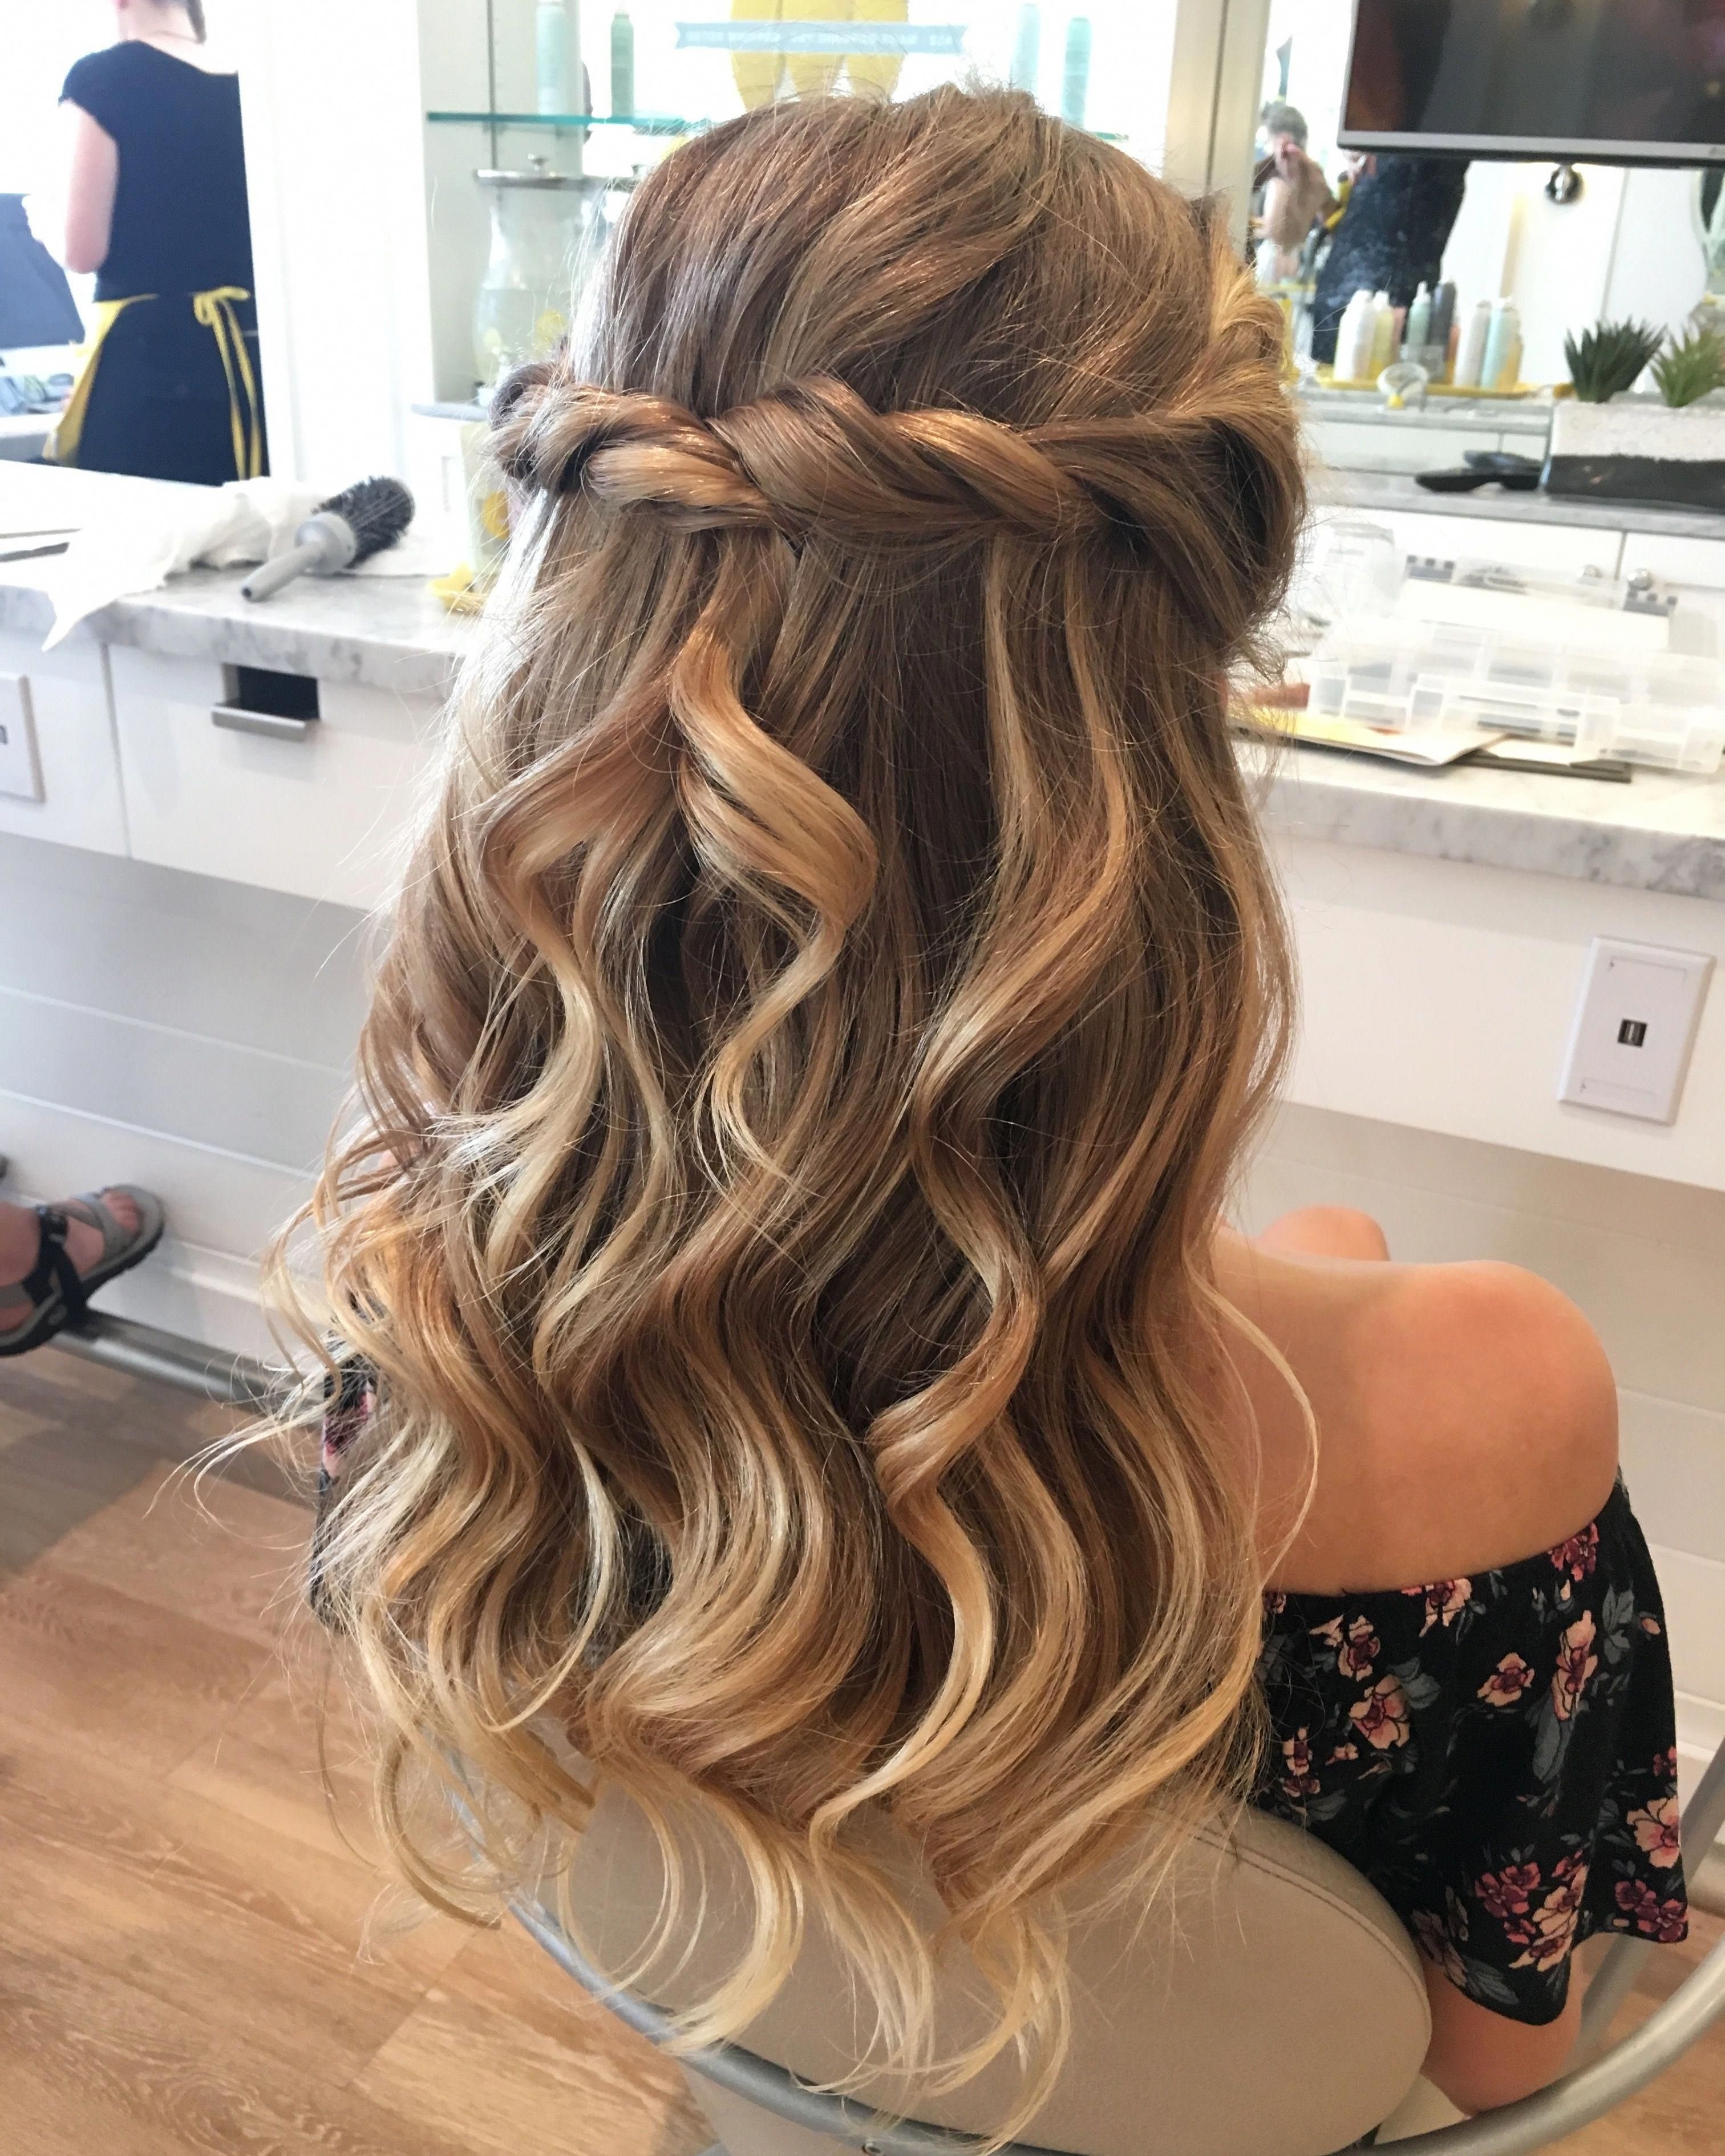 Fabulous all down prom hairstyles #alldownpromhairstyles (With images) | Bridesmaid hair long ...